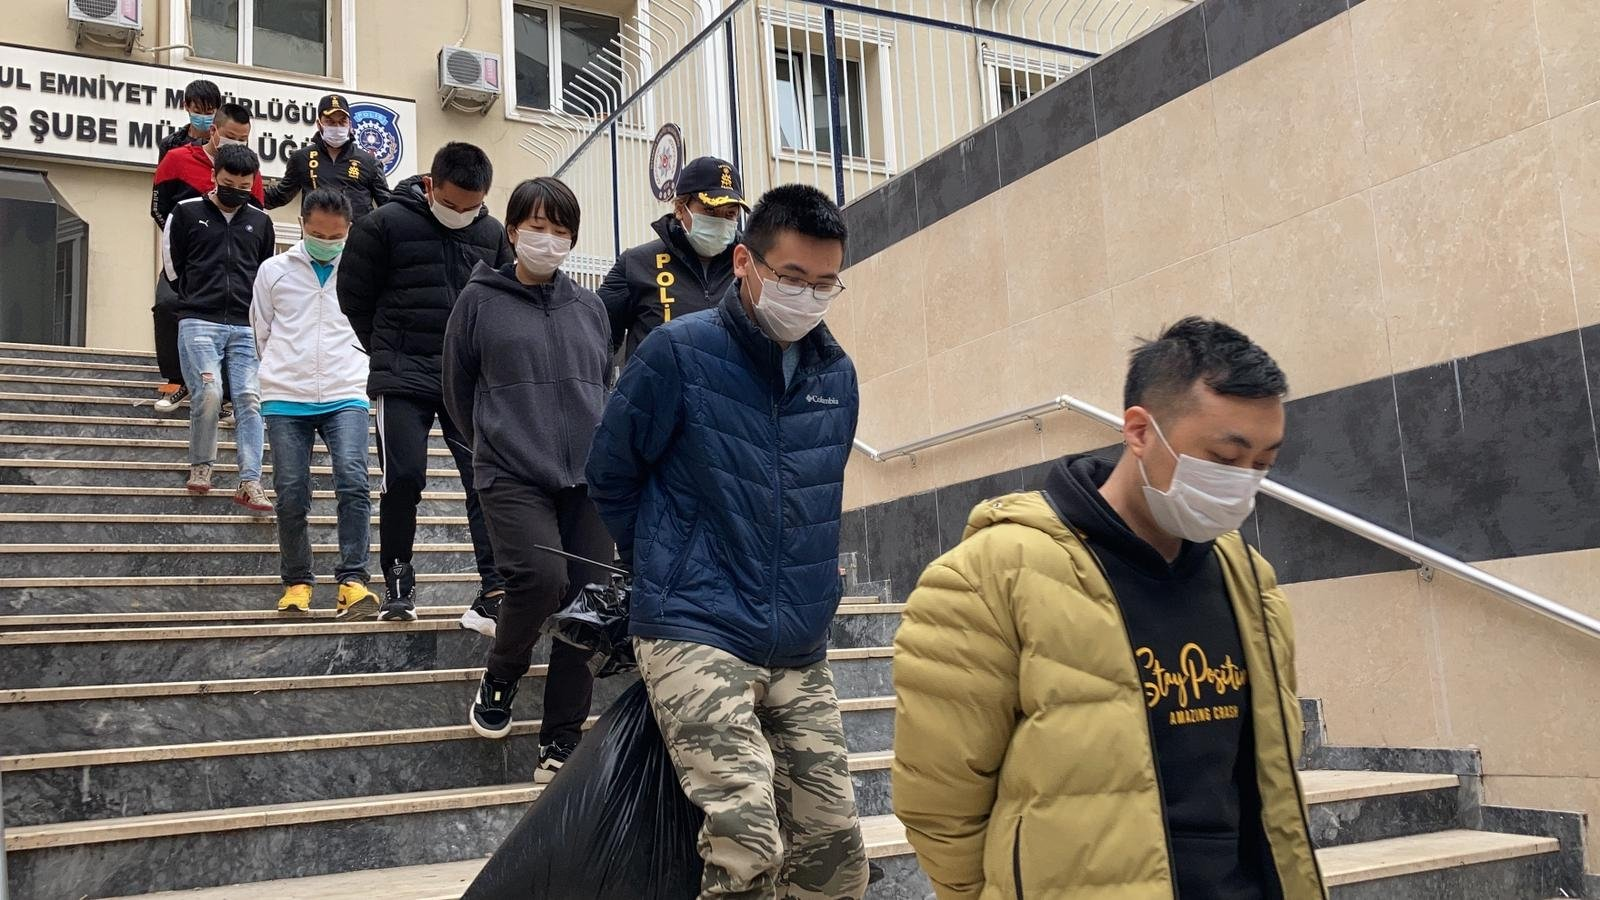 Turkish Police escort suspected gang members in Istanbul on Saturday, March 13, 2021 (DHA Photo)